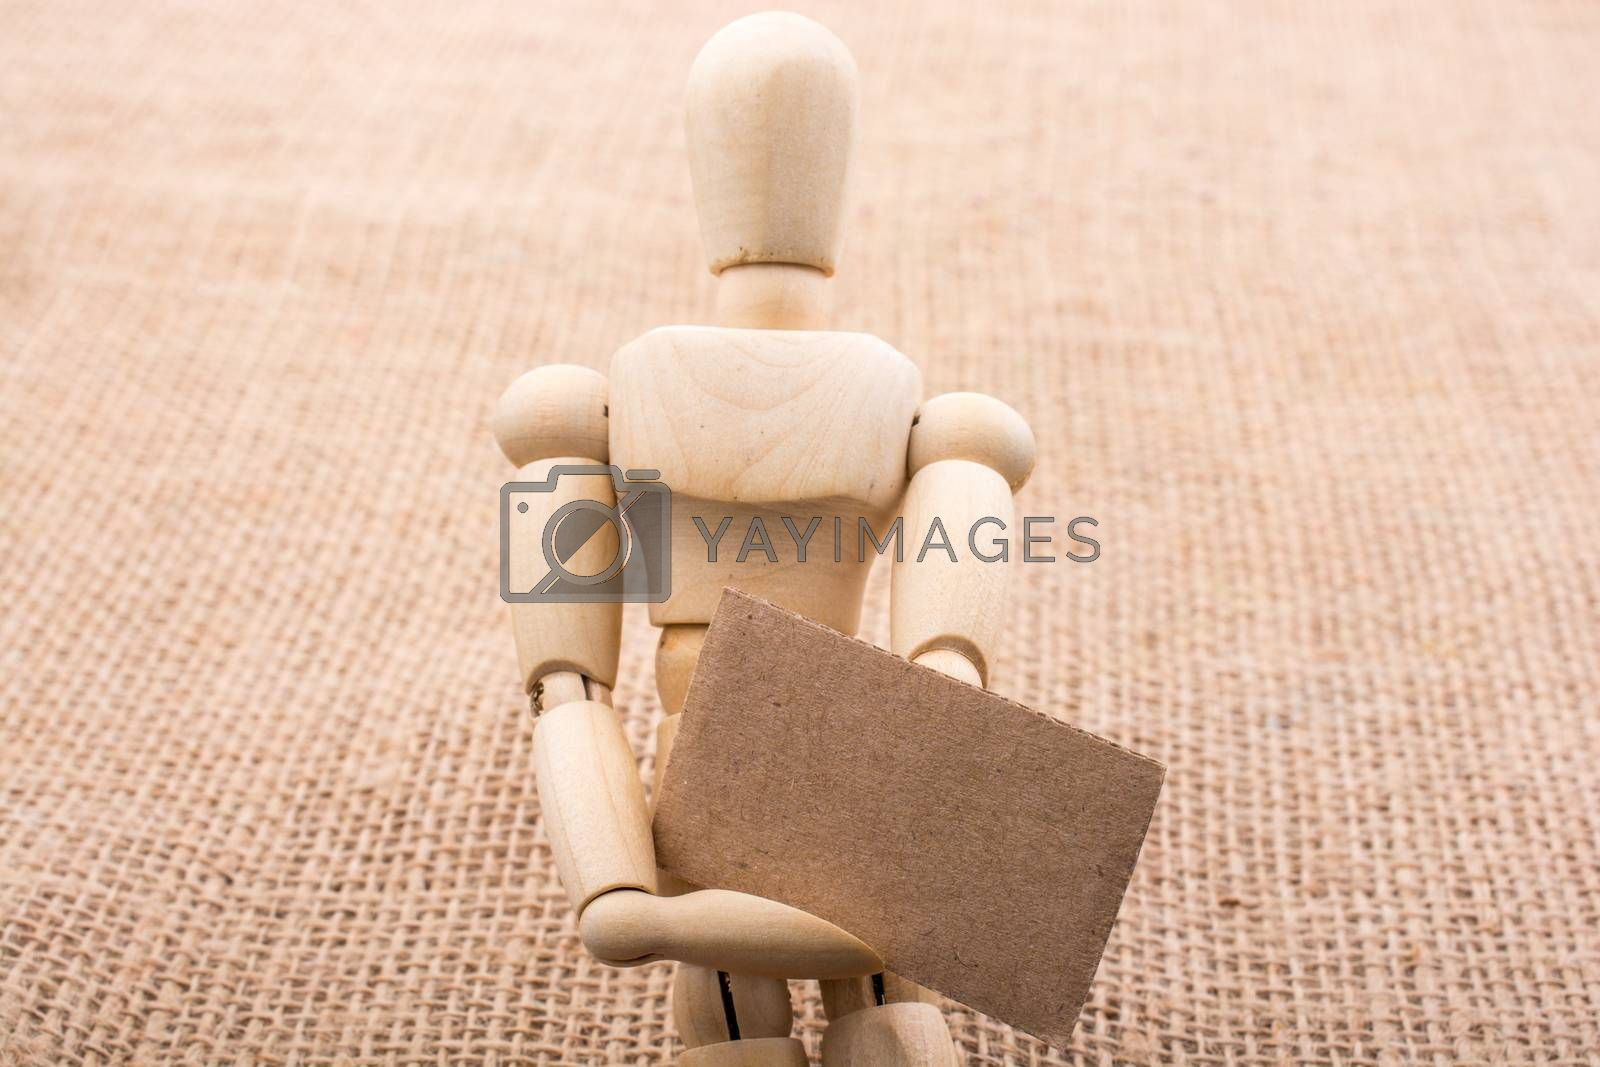 Wooden dolls posing with a noticeboard on canvas